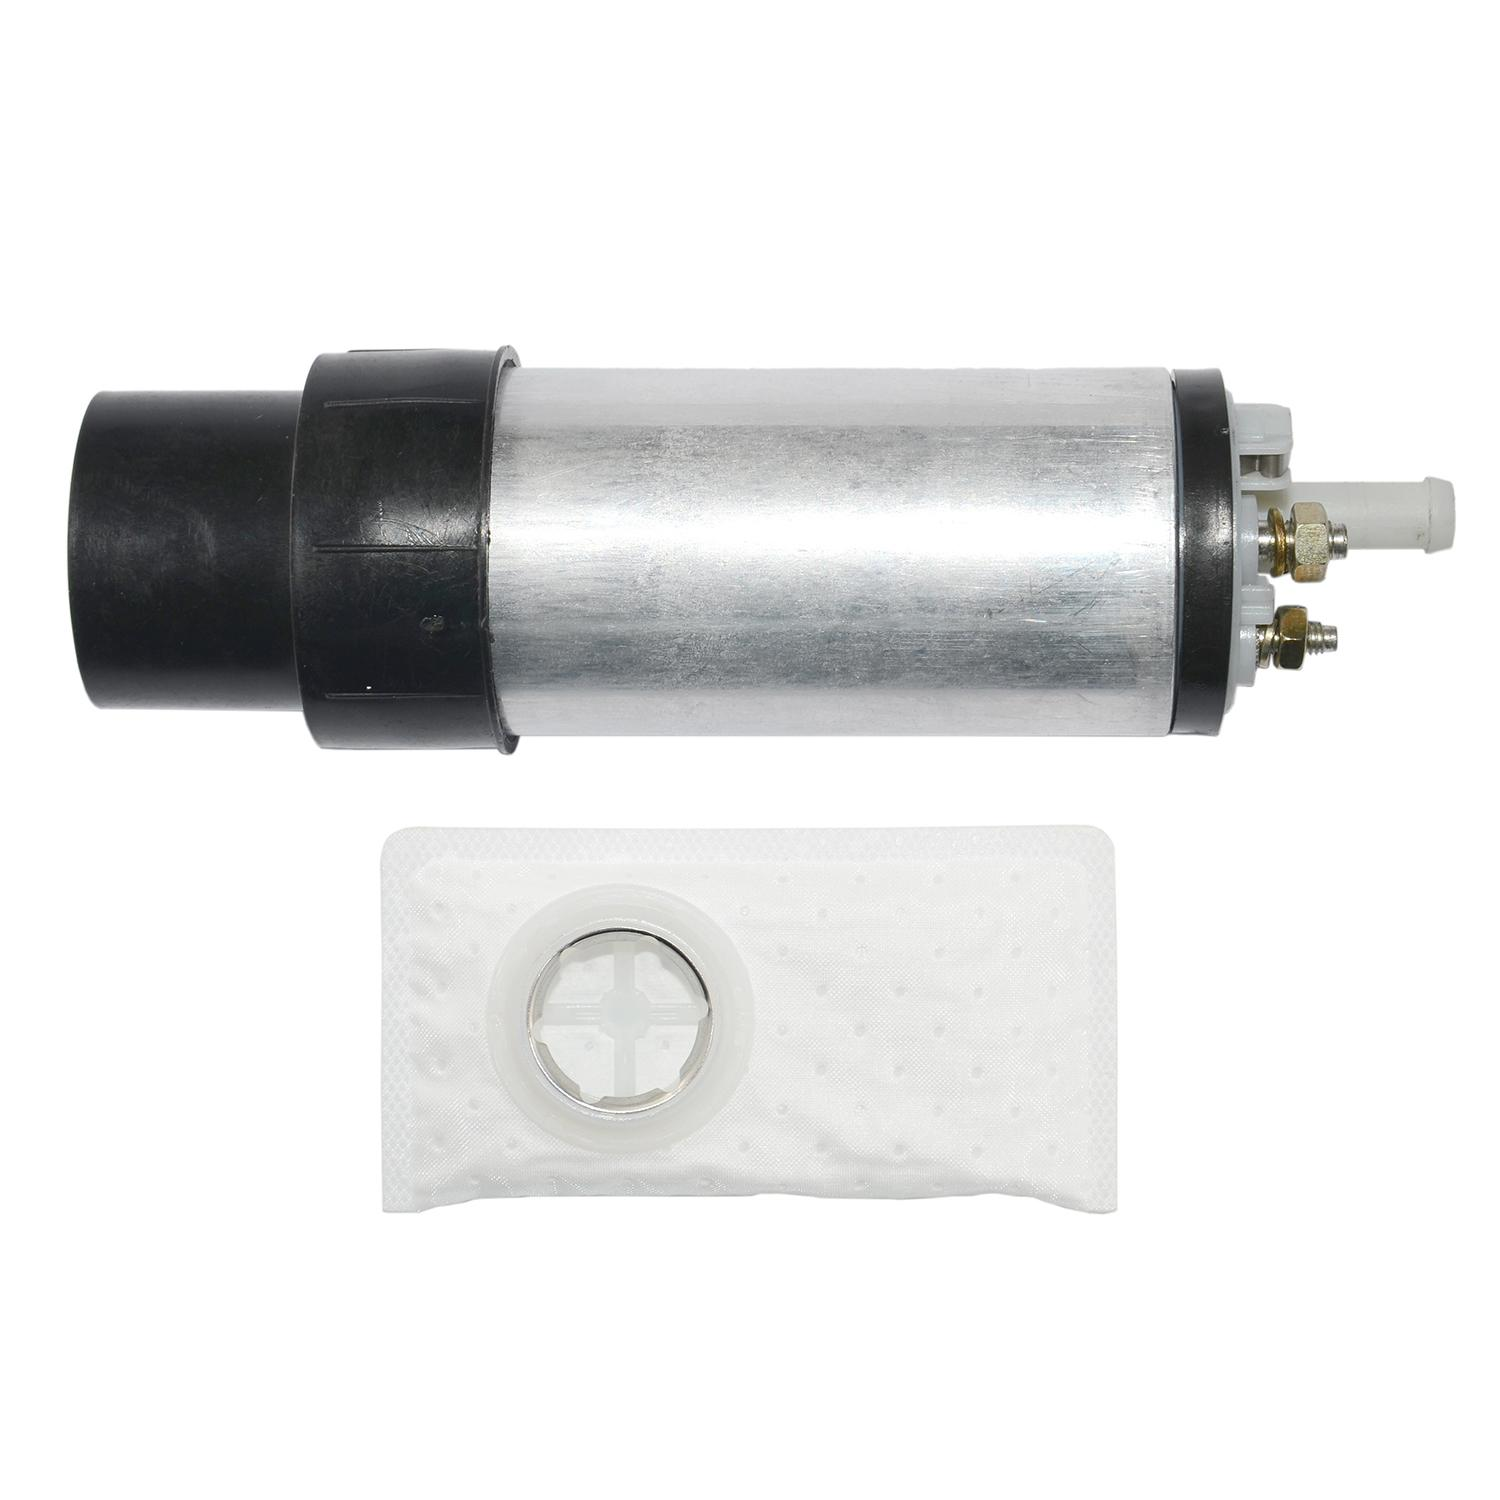 AP03 43mm Fuel Pump 16141341231 for <font><b>BMW</b></font> K Series <font><b>K100</b></font> K75 K750 1000 1100 R850R R1100R image